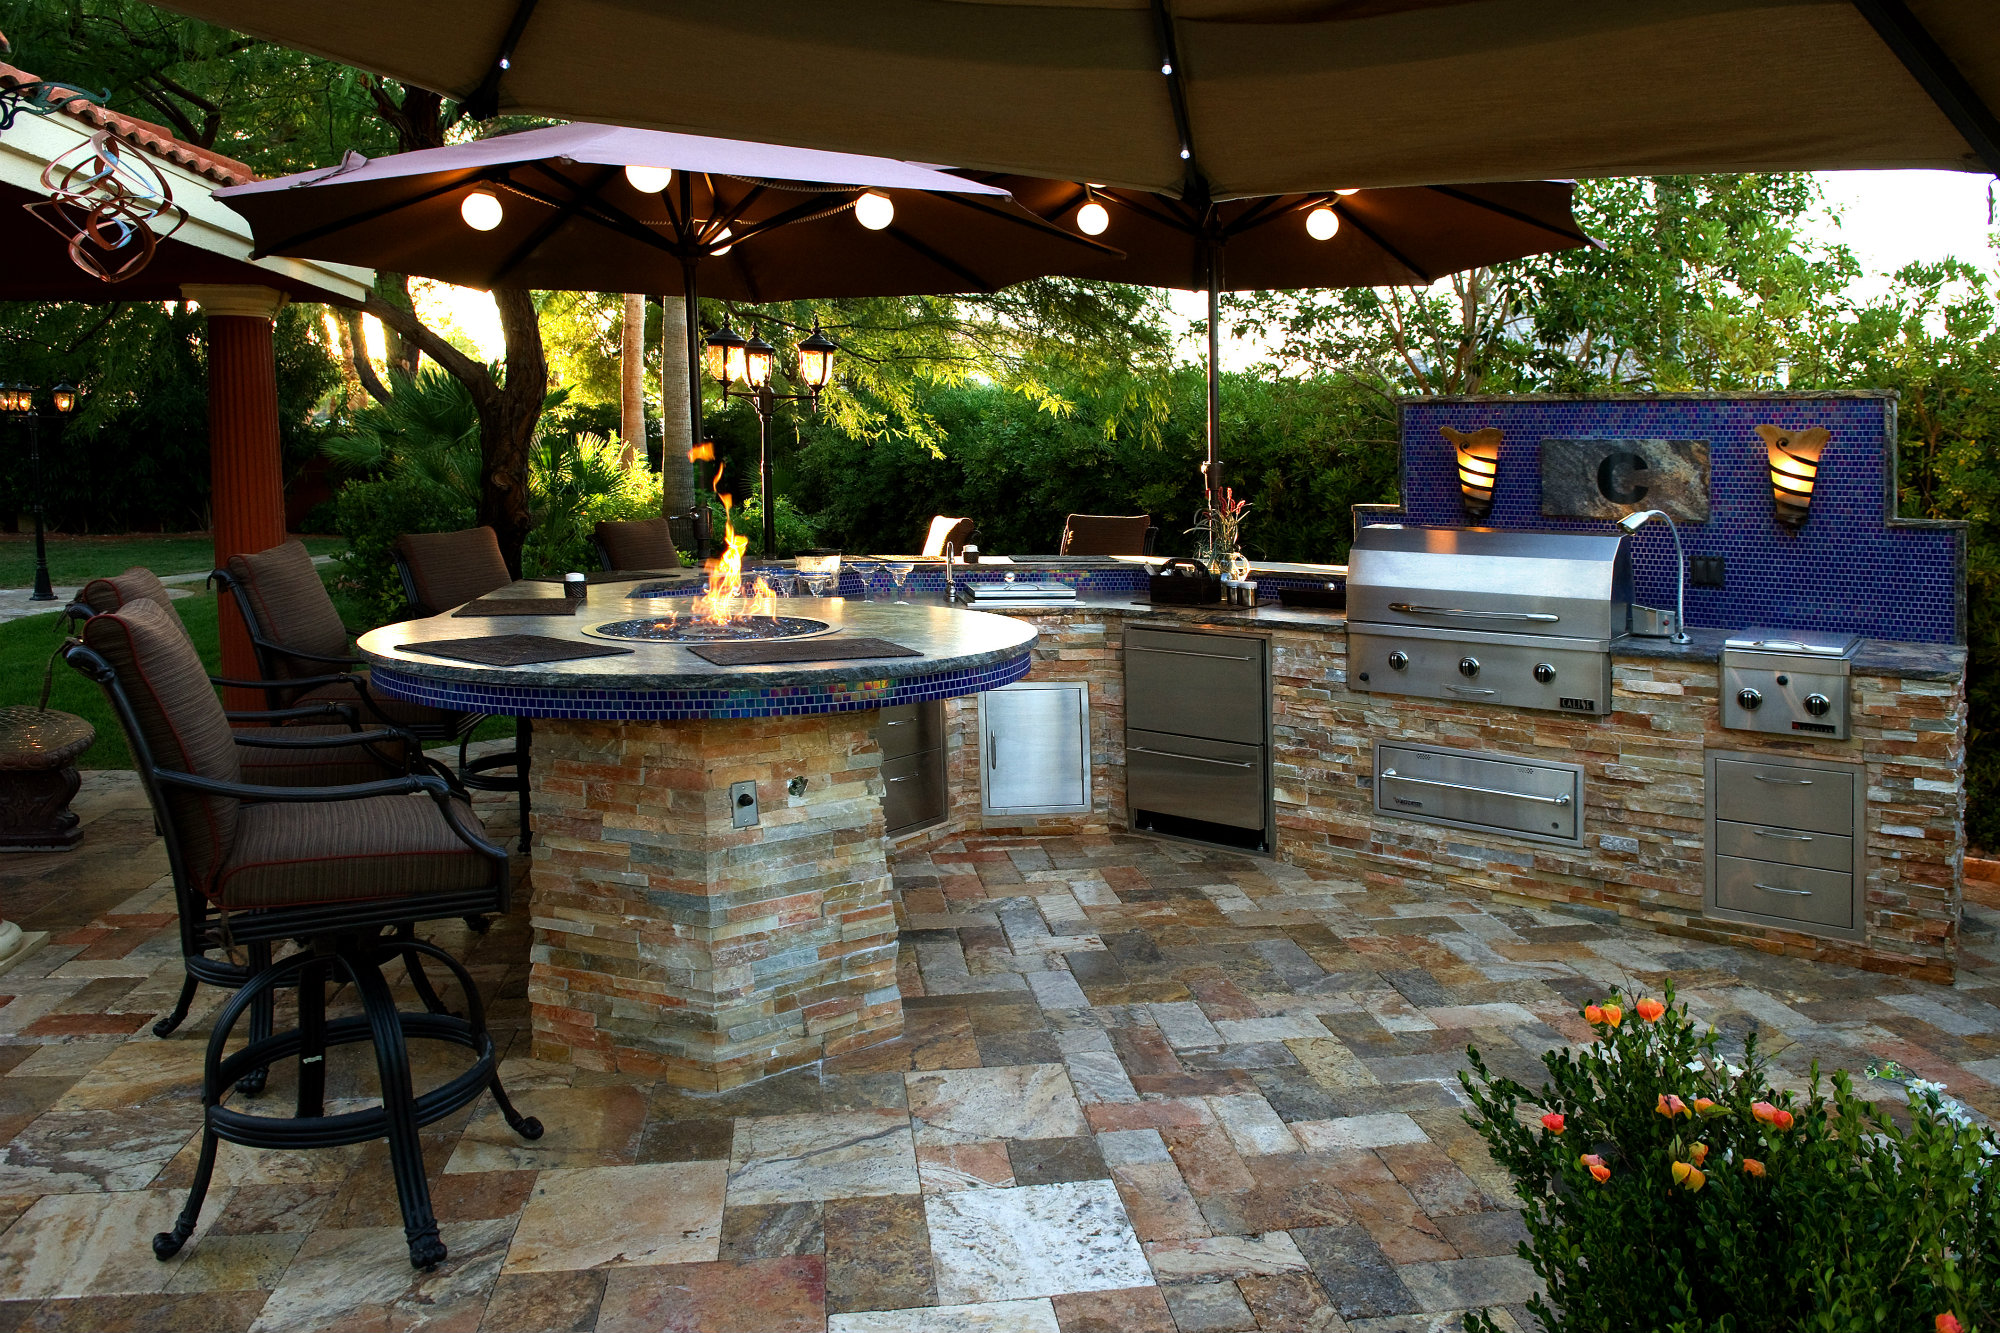 Backyard Living Trends | Pool & Spa News | Accessories ... on My Garden Outdoor Living id=55513